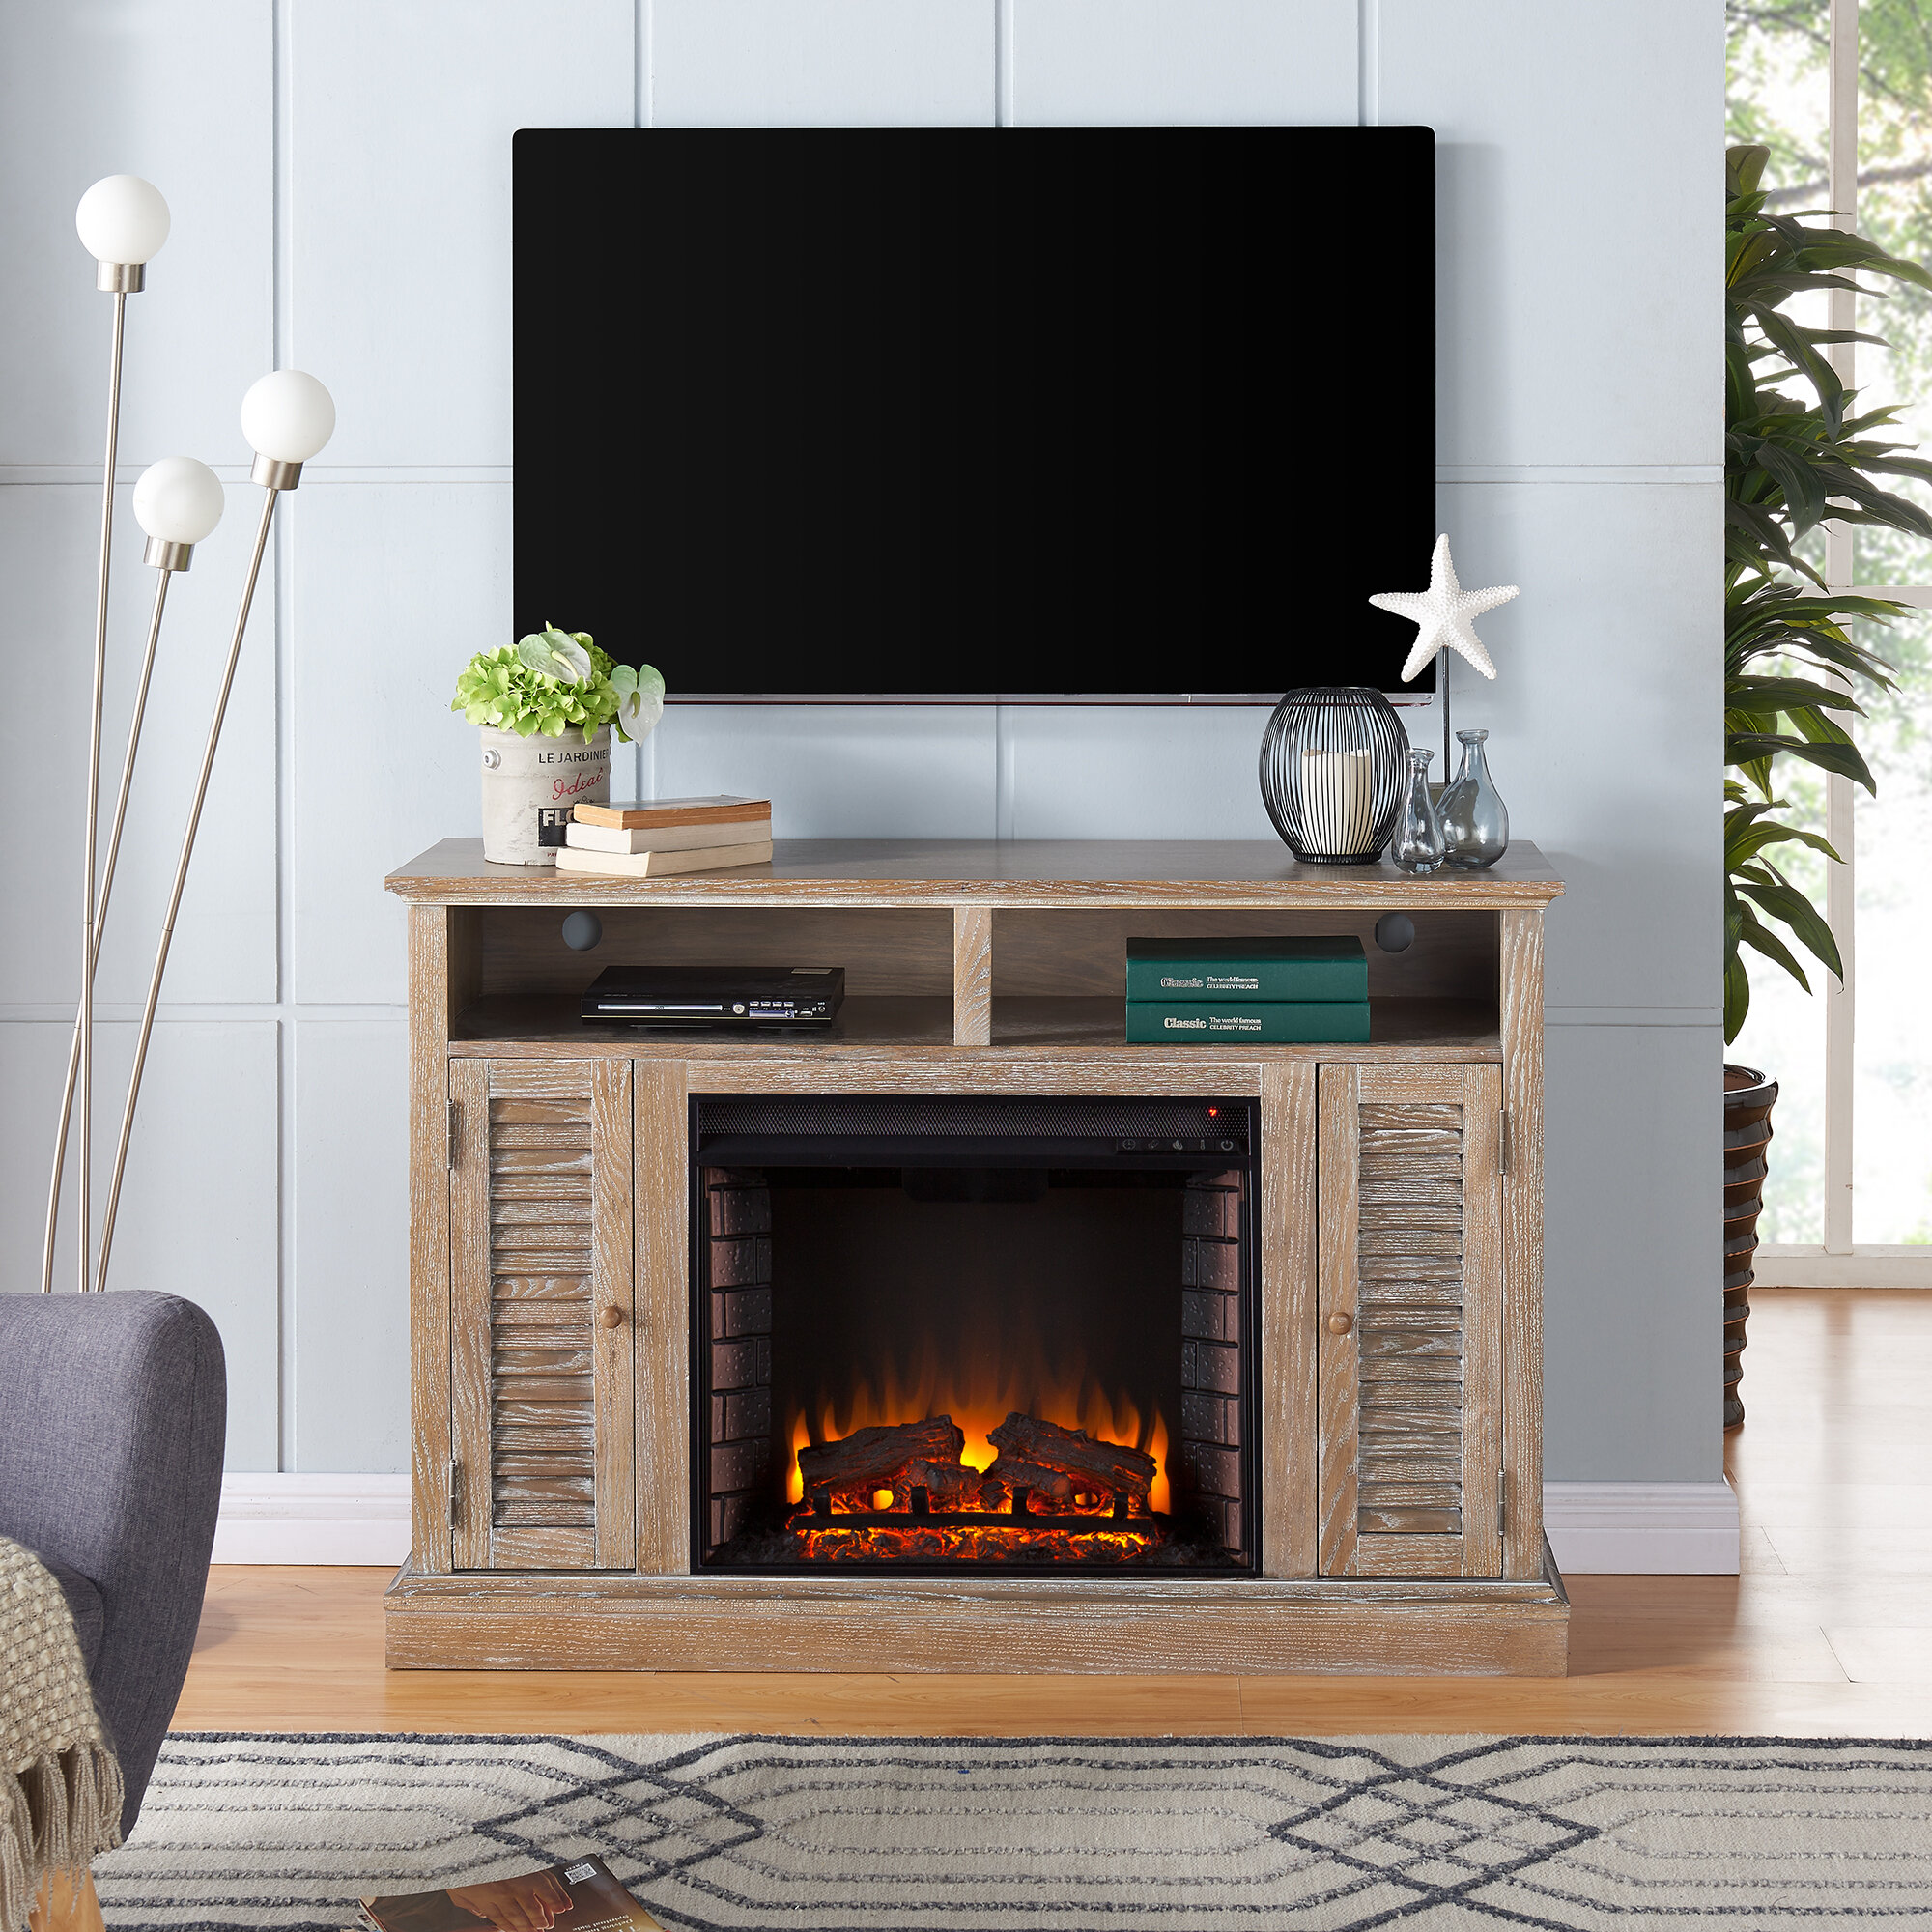 Alcott Hill Contreras Tv Stand For Tvs Up To 48 With Fireplace Wayfair Ca